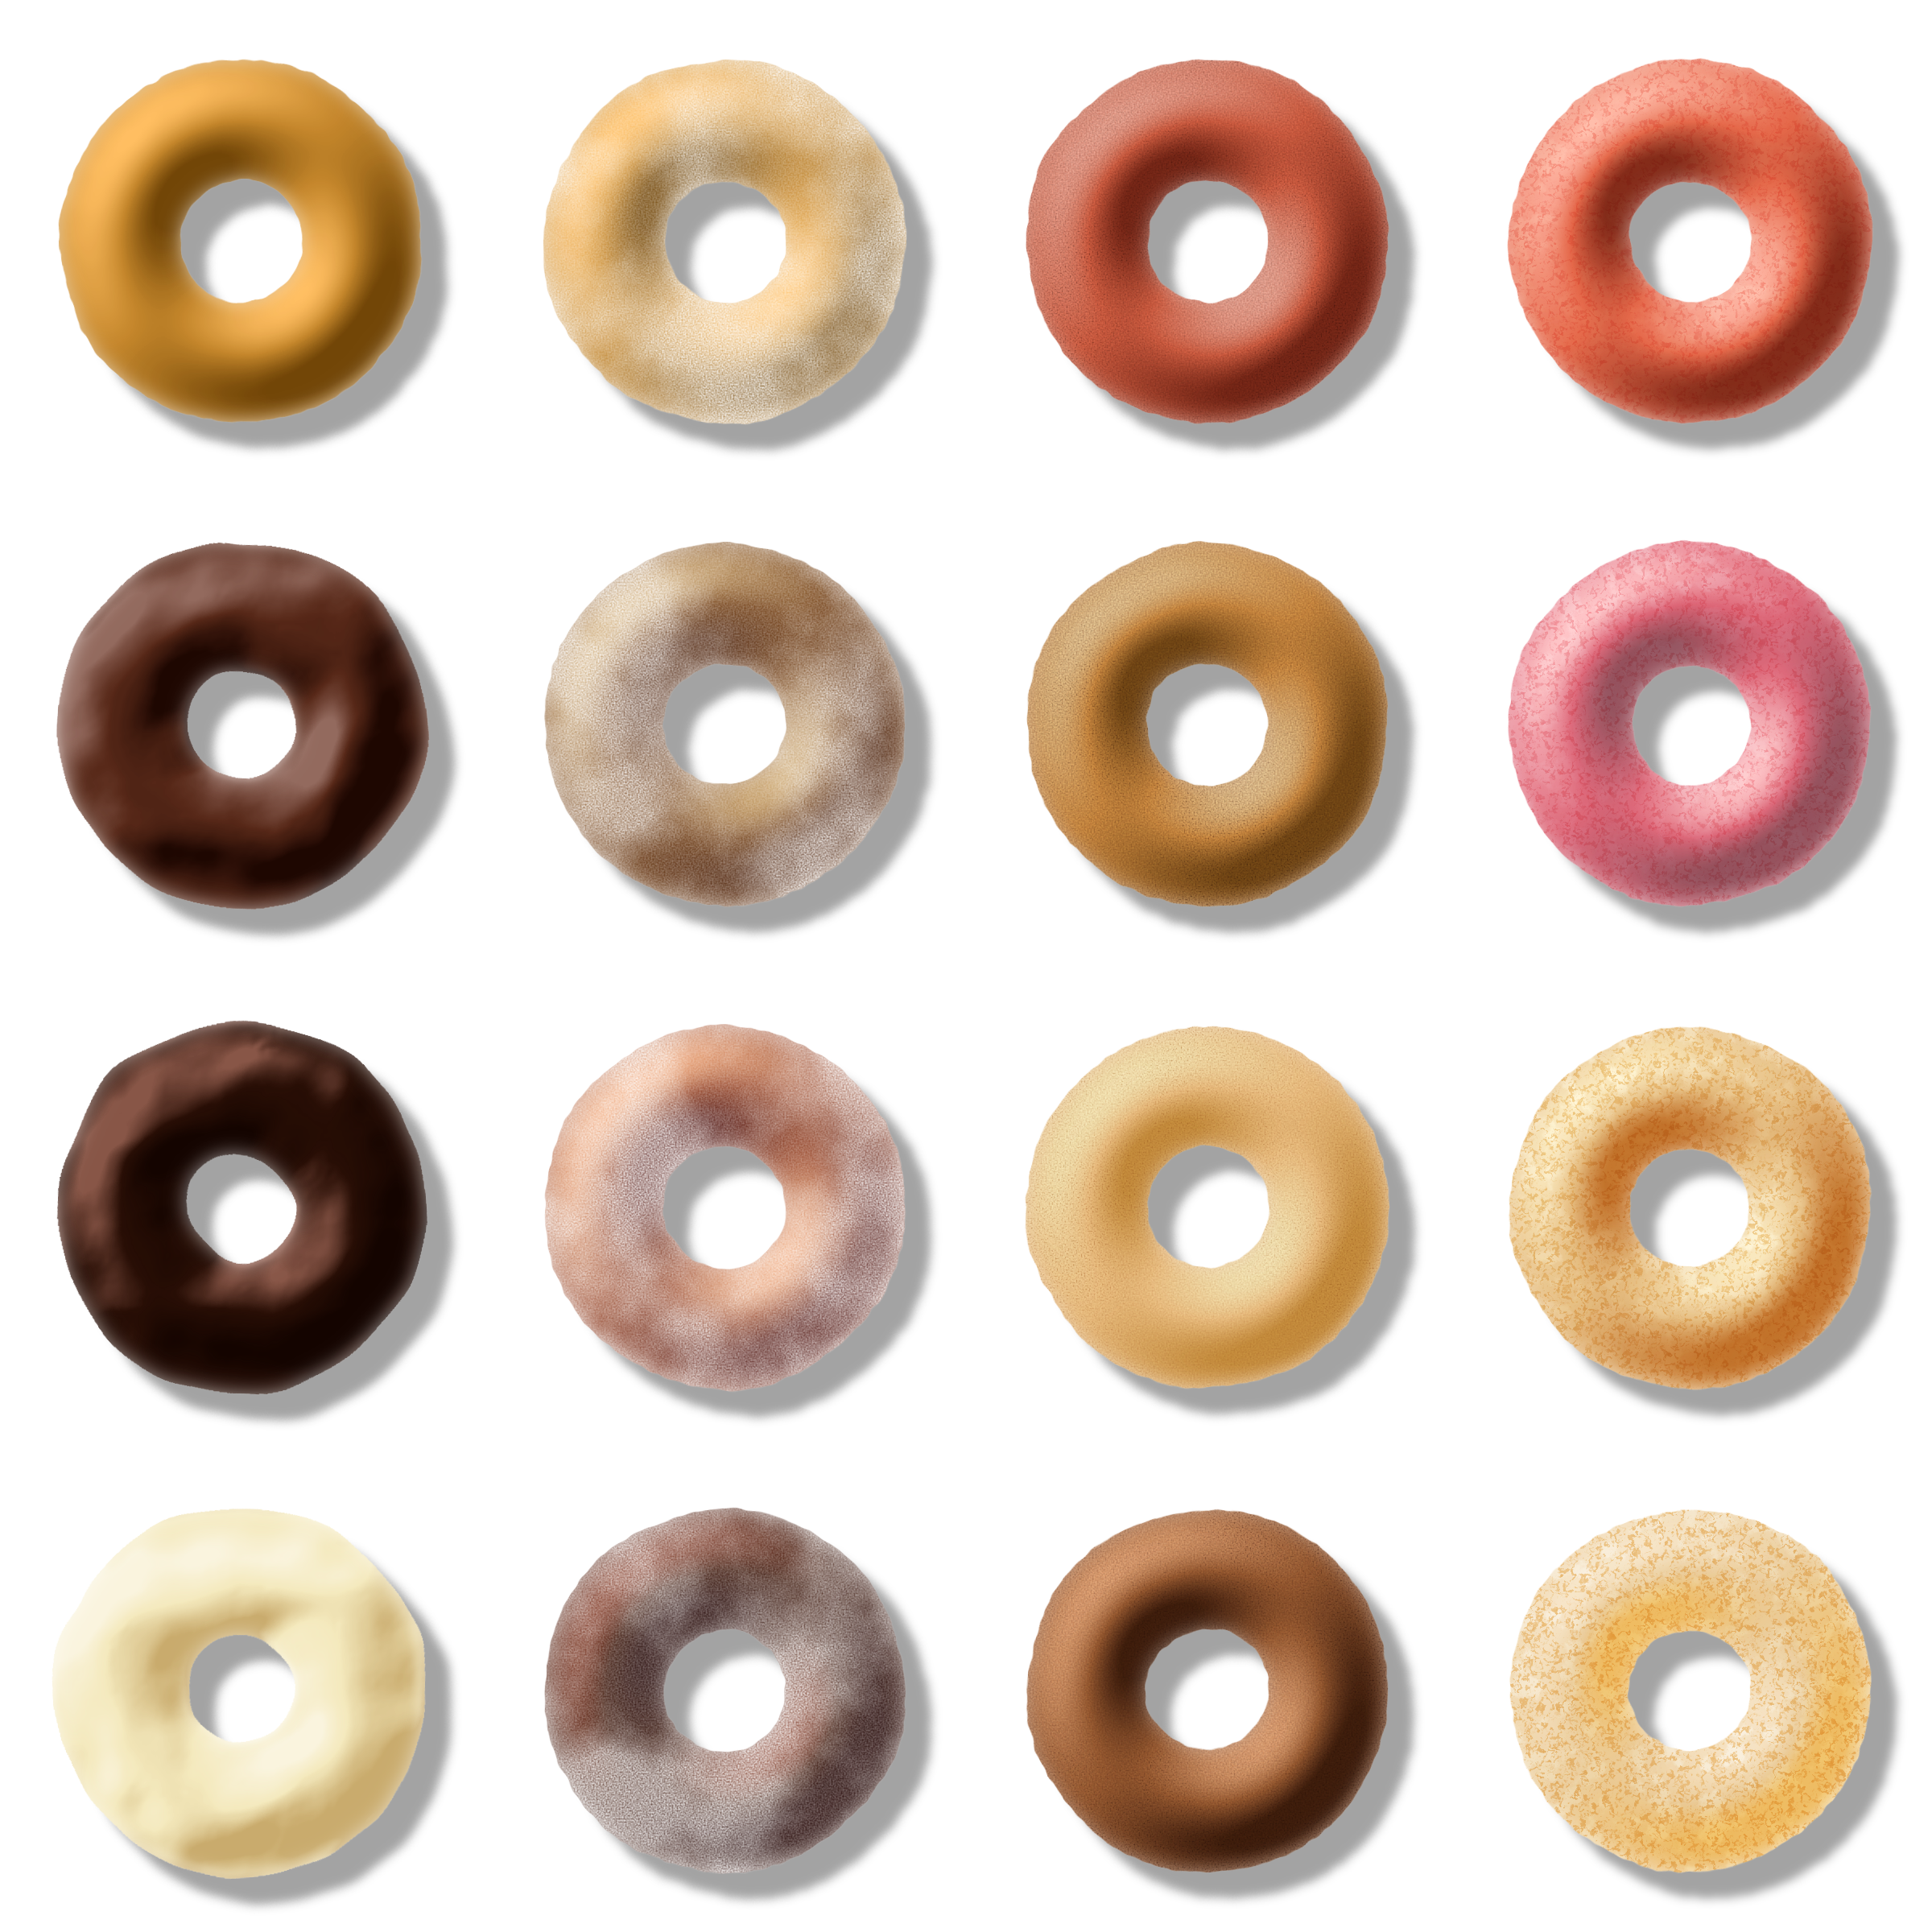 donut pack 2 by Lazur URH